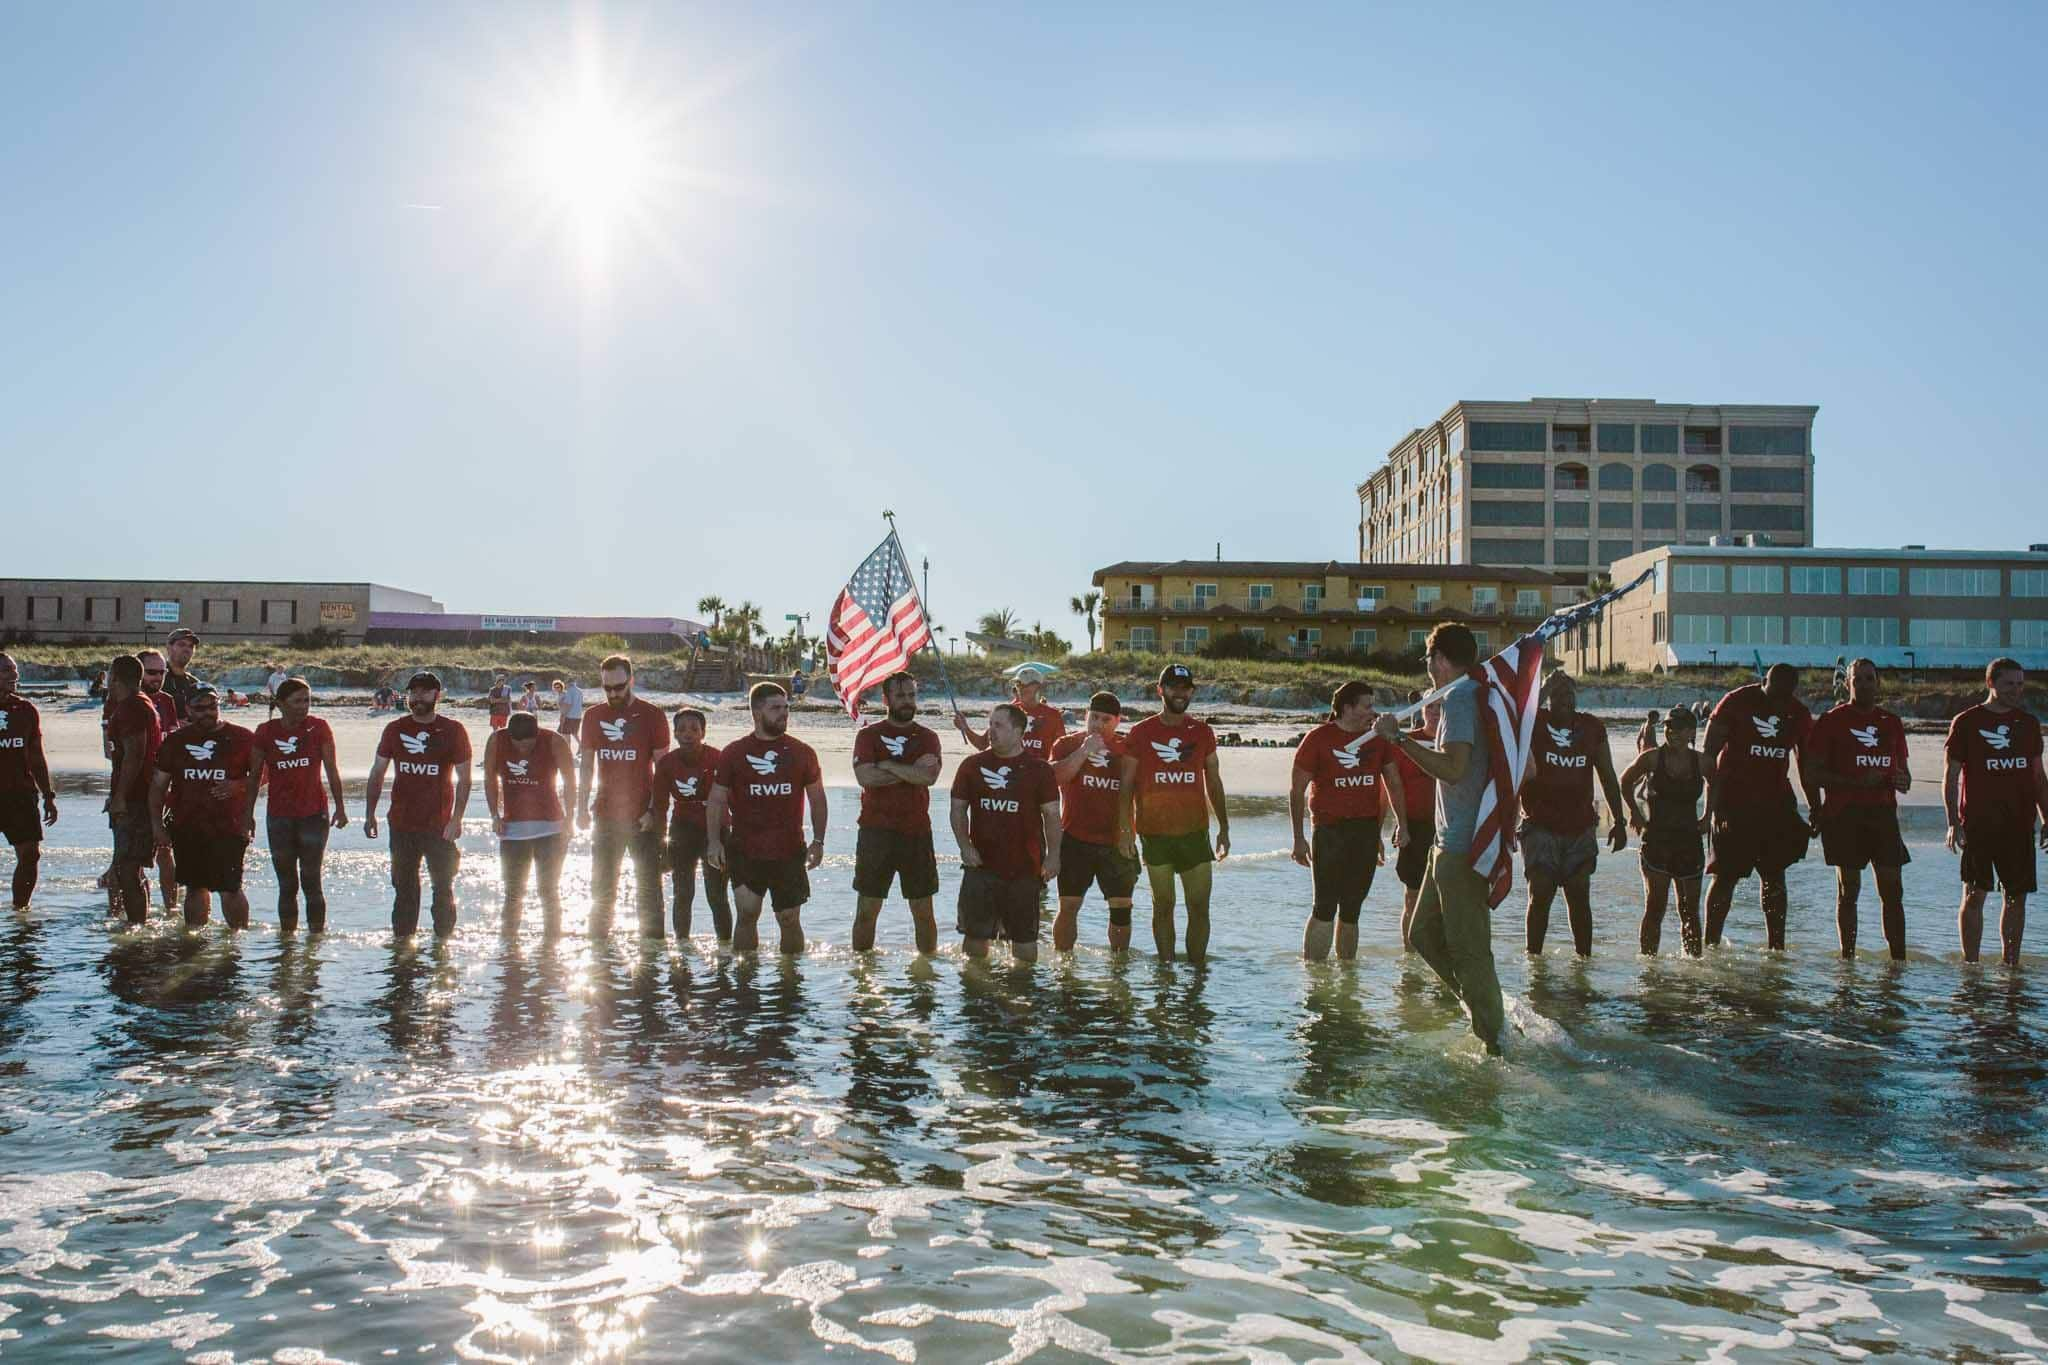 team-rwb-national-goruck-camp-2016-rucking-university-standing-in-water